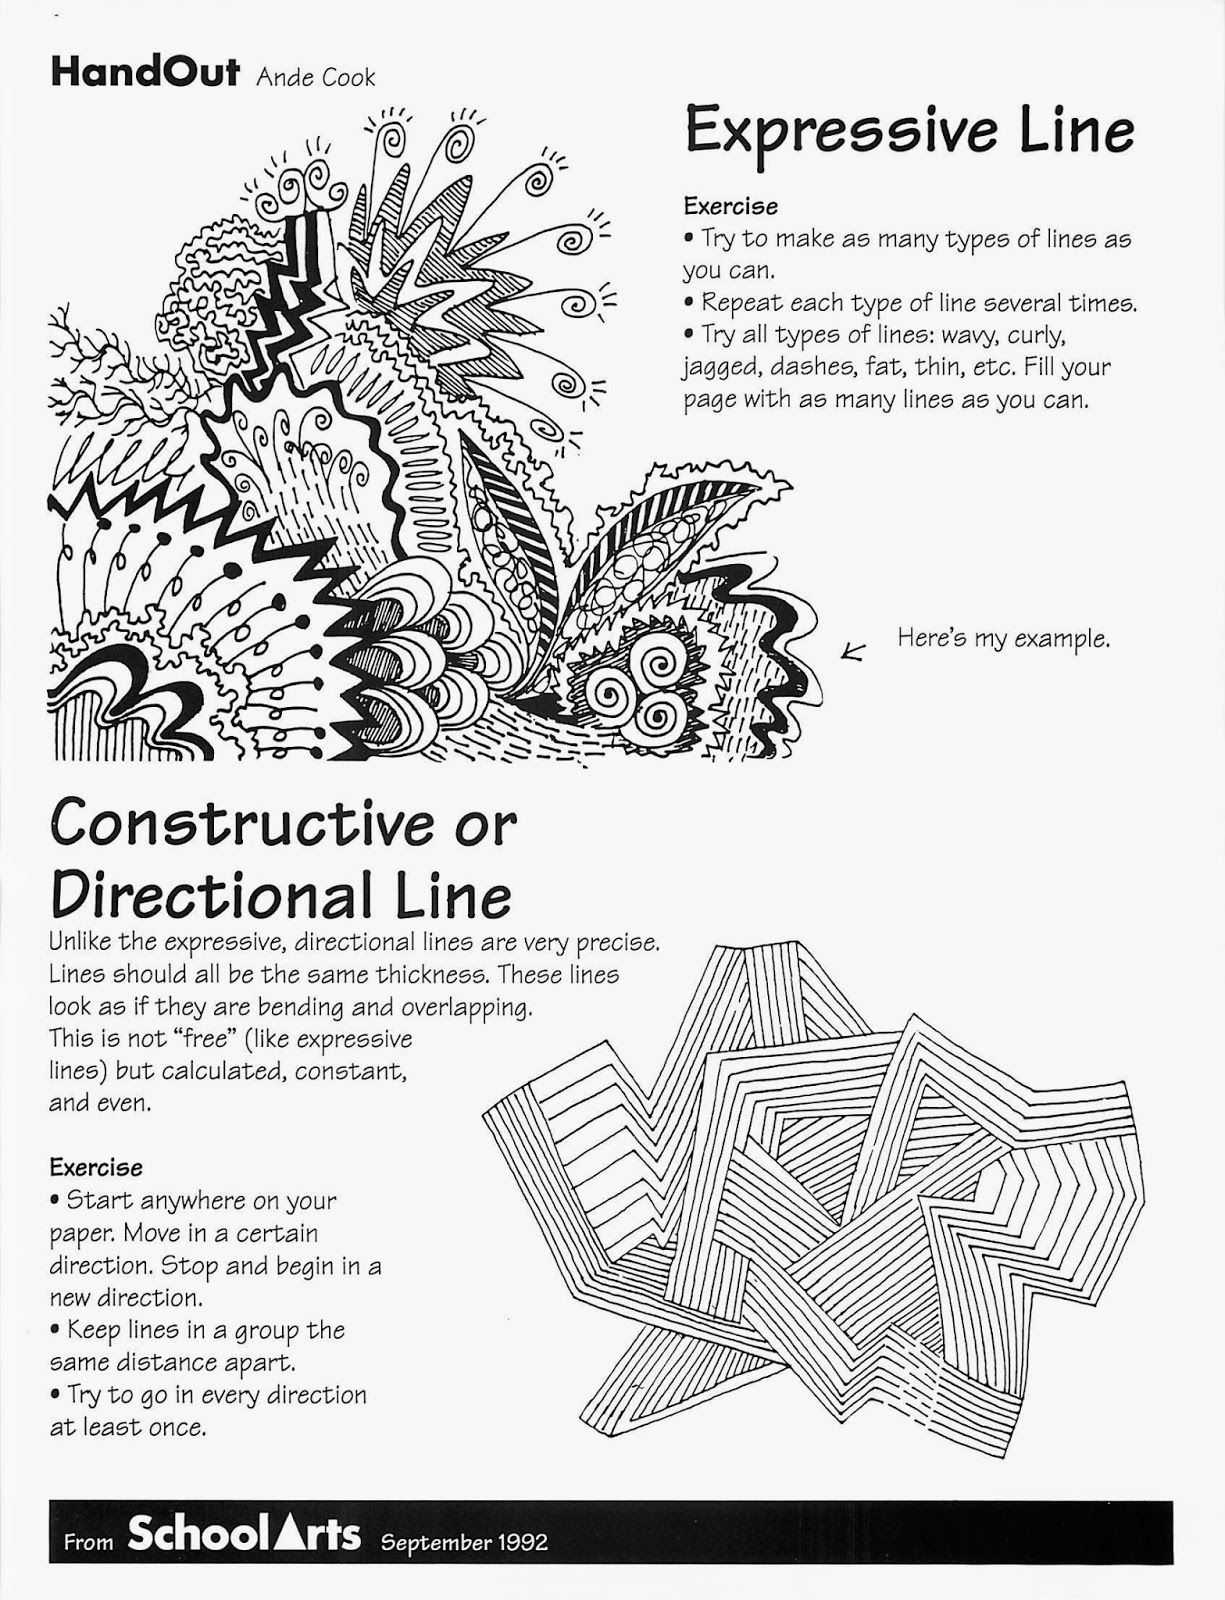 Line Drawing Activity : Free ande cook s expressive and directional line handout